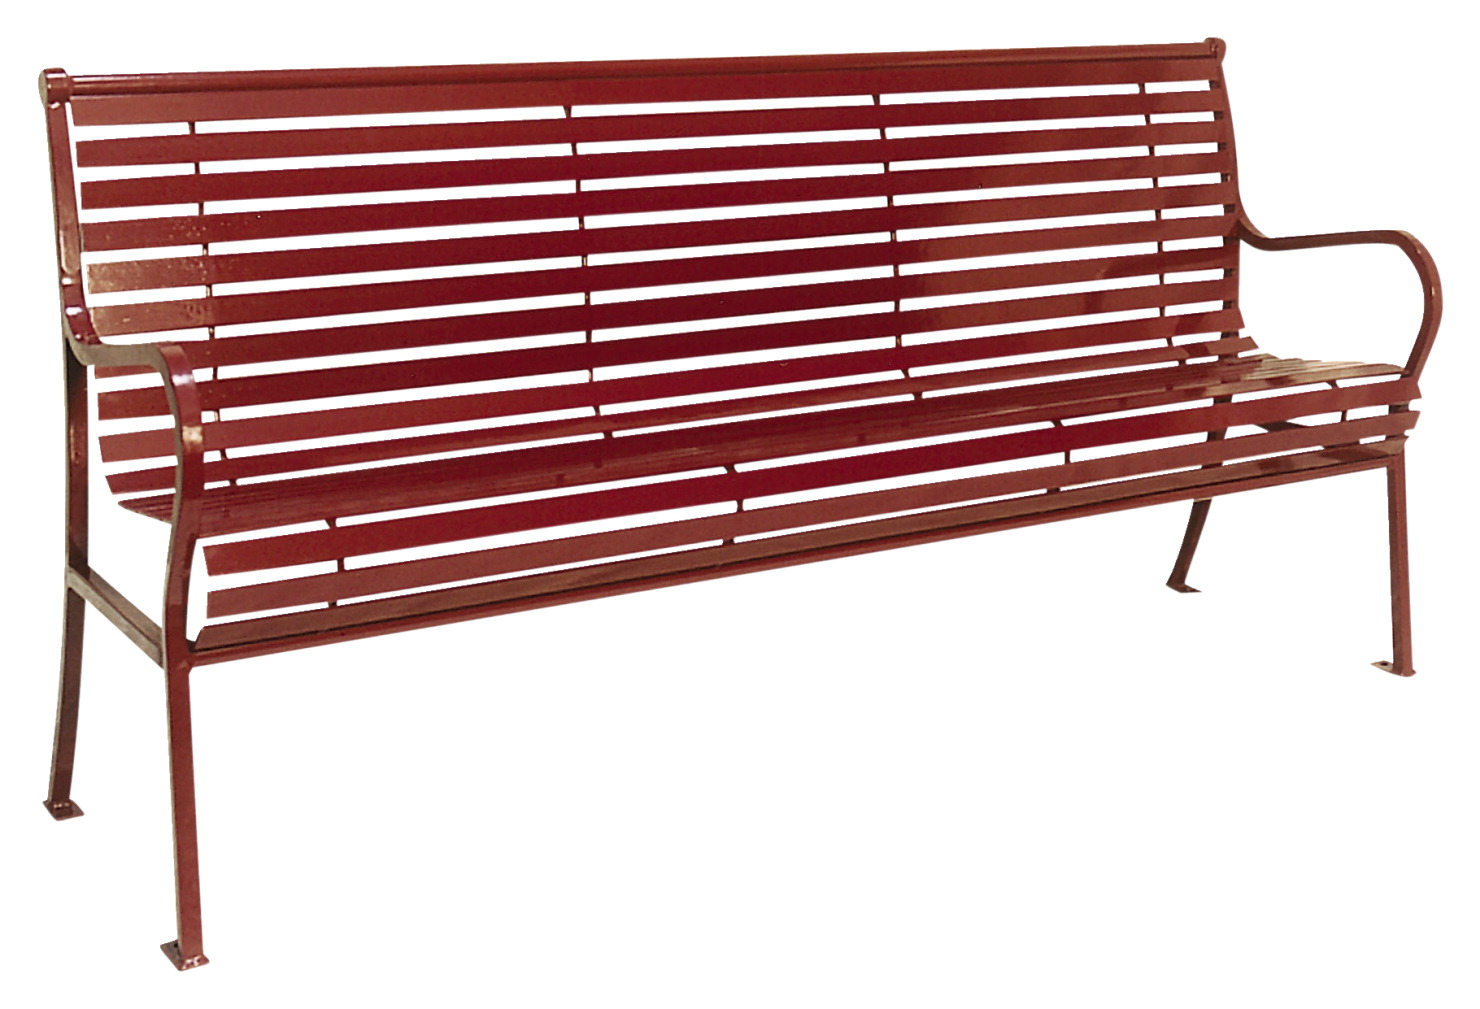 UltraSite Hamilton Steel Bench with Back, 74 x 24 x 36 Inches, Various Options